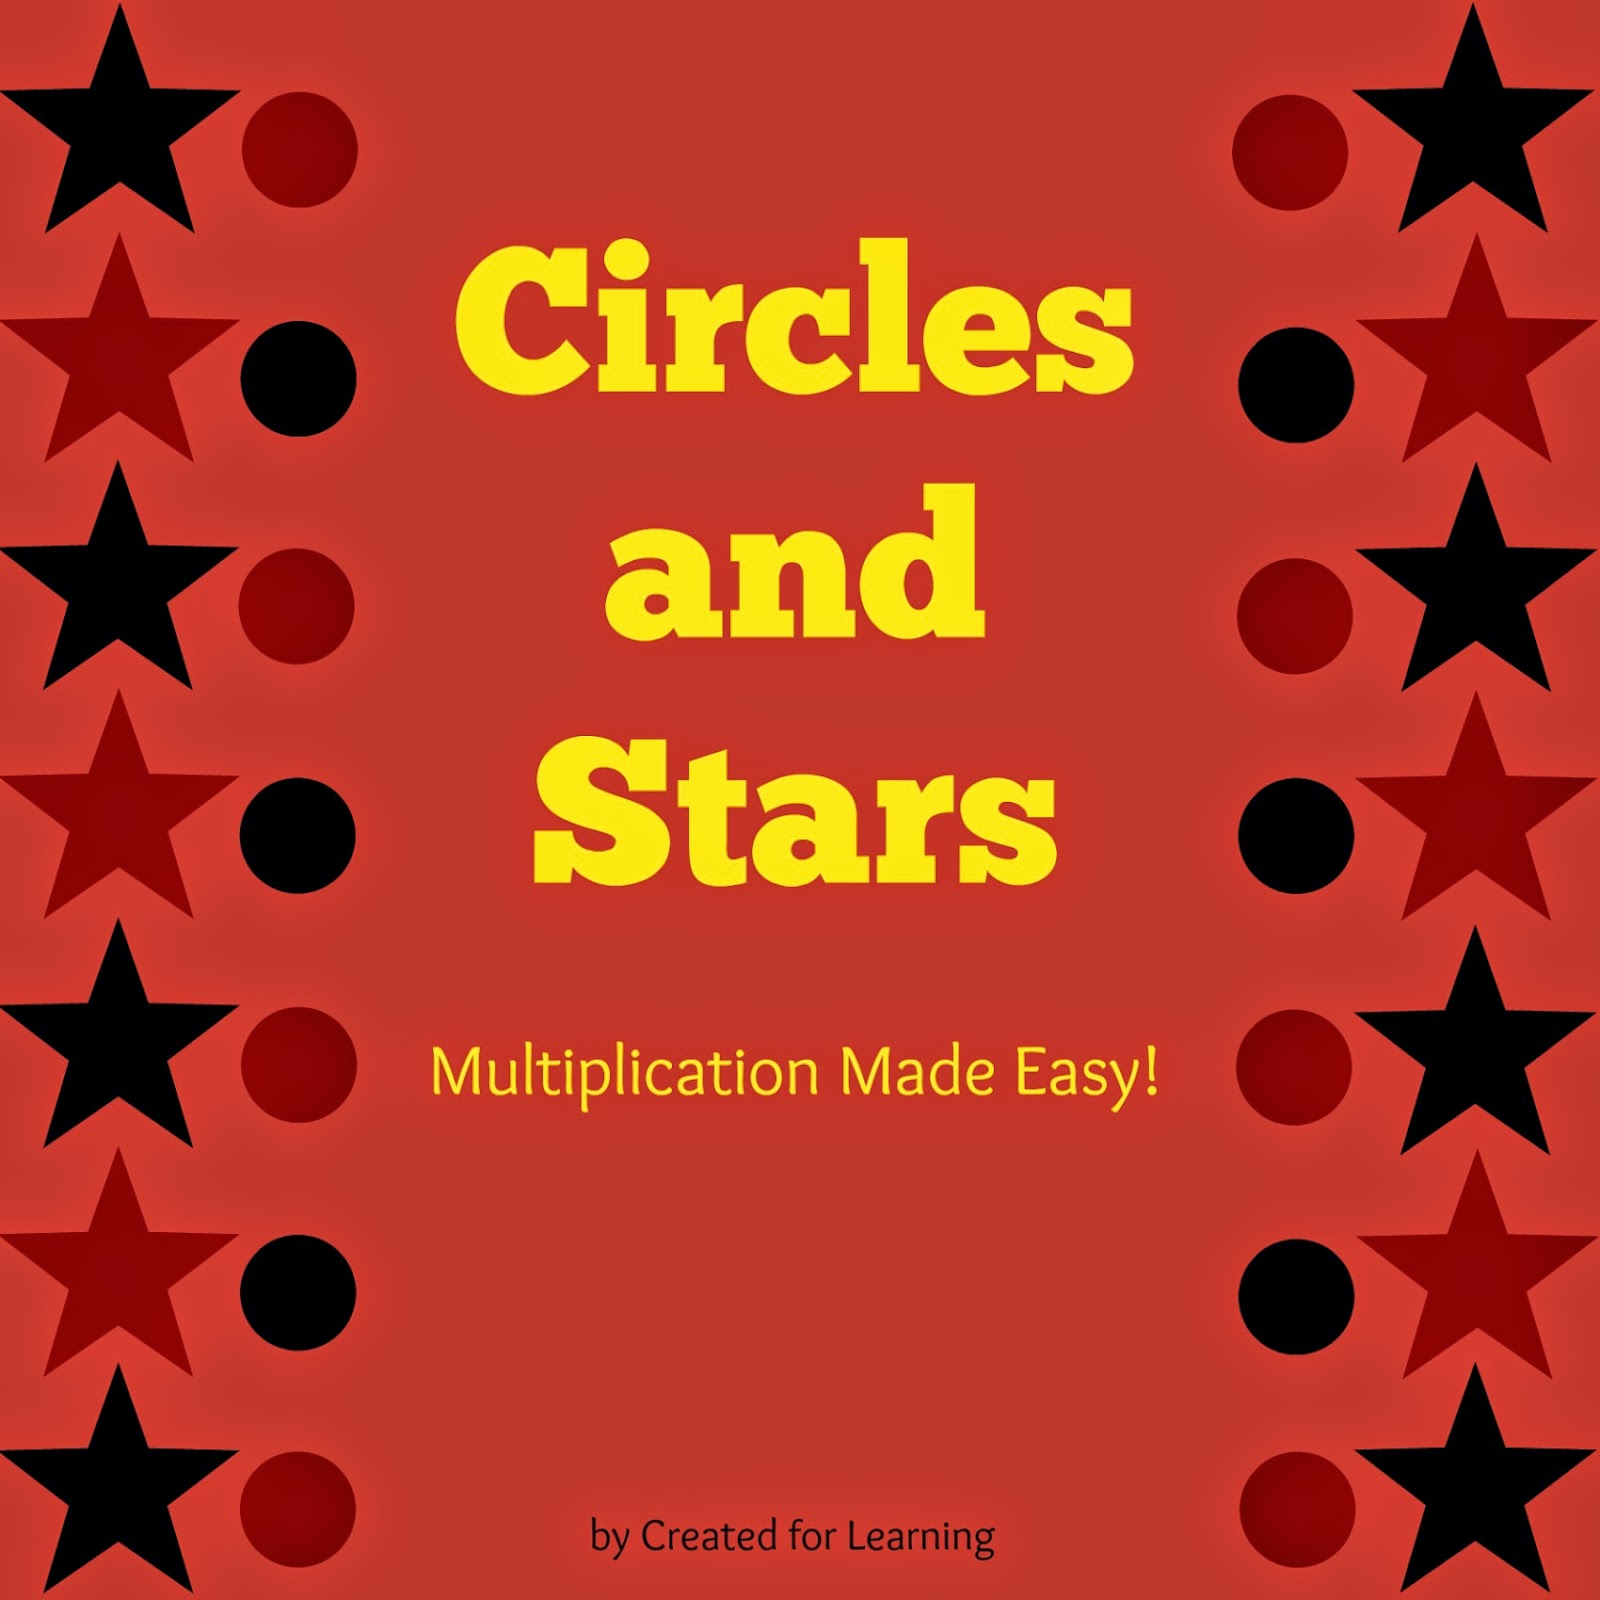 http://www.teacherspayteachers.com/Product/Circles-and-Stars-Multiplication-Made-Easy-388875